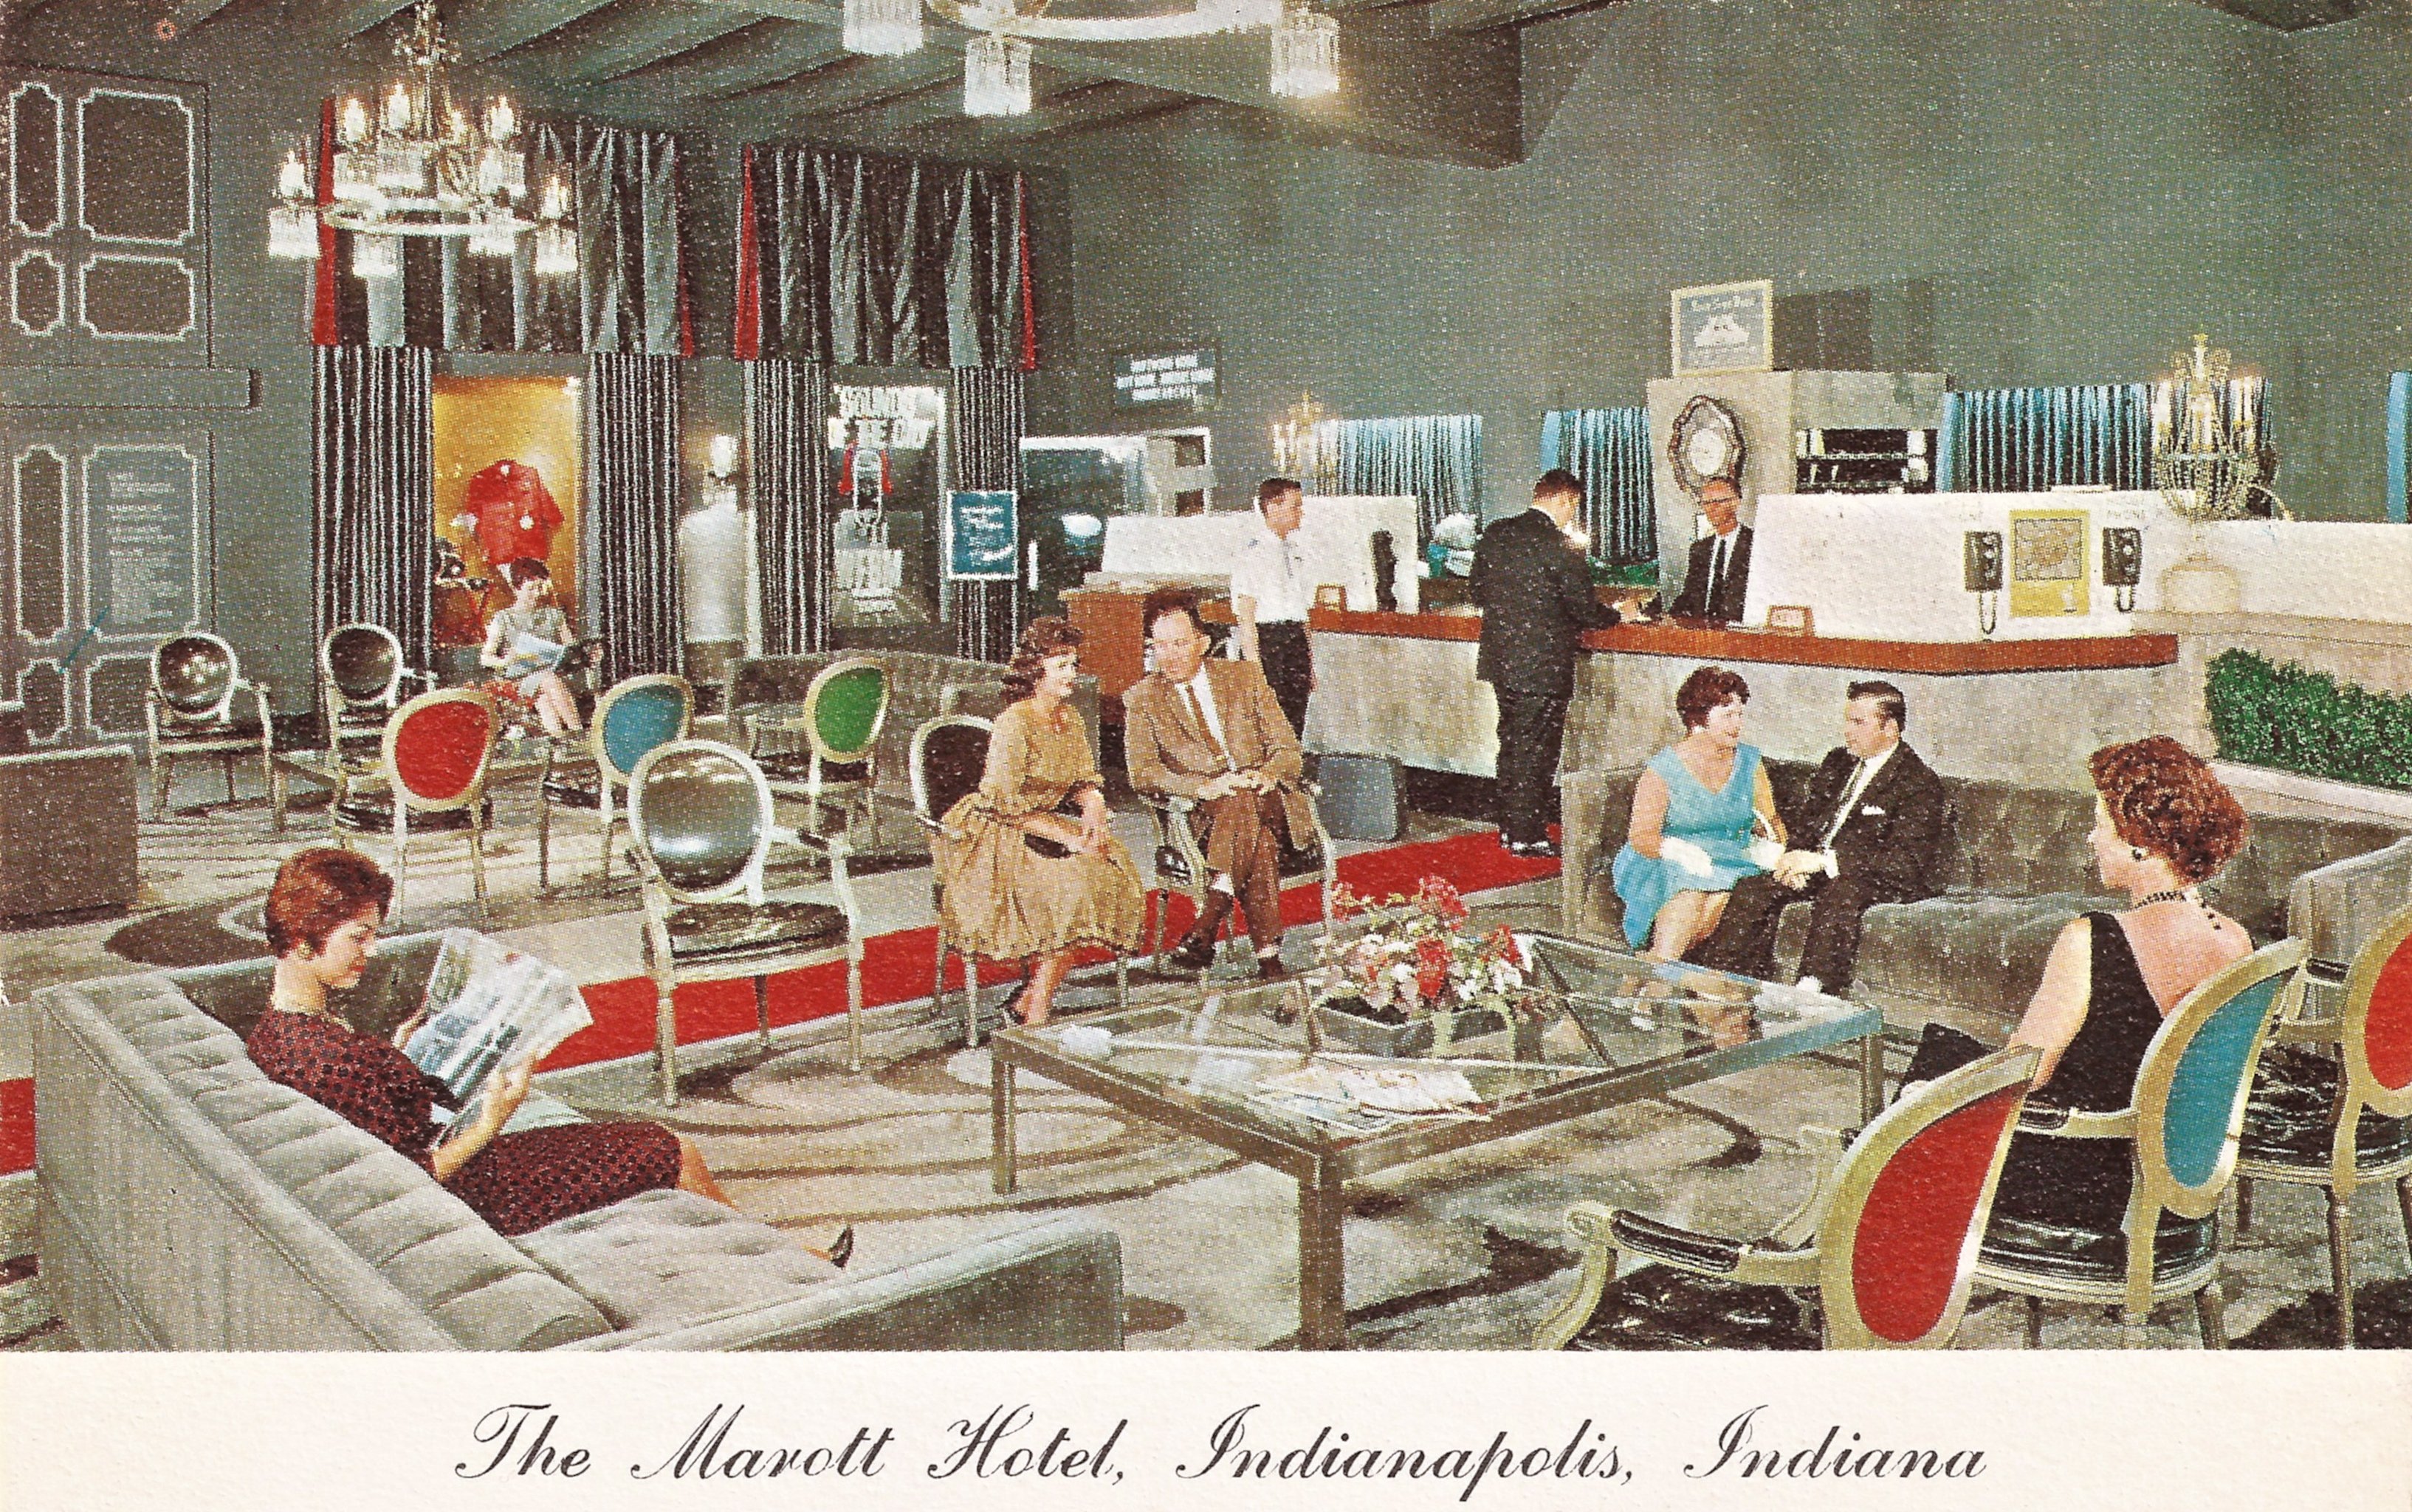 Sunday Adverts: The Marott Hotel